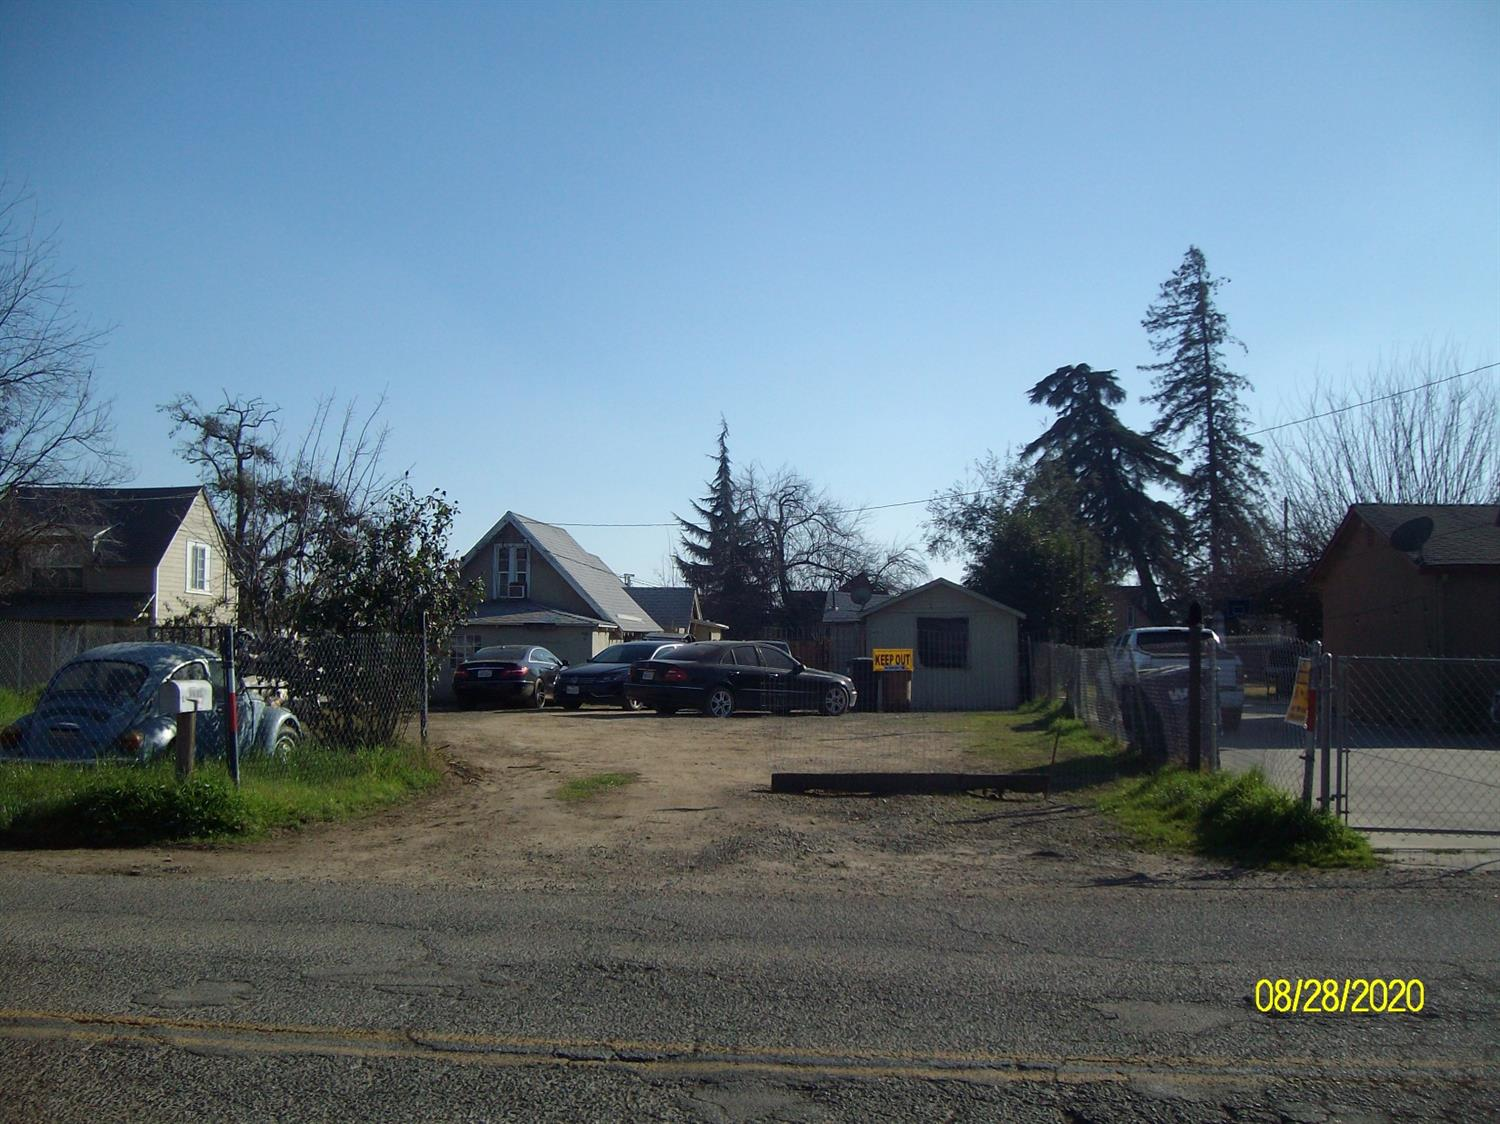 Two units on 12,632 sq.ft. lot. Tenants have been there for approx 5 years, would like to stay. Buyer to verify code compliance and zoning. Property has goats, chickens, and dogs fenced in. Electricity is shared between both units. Rents $1350 per month total.